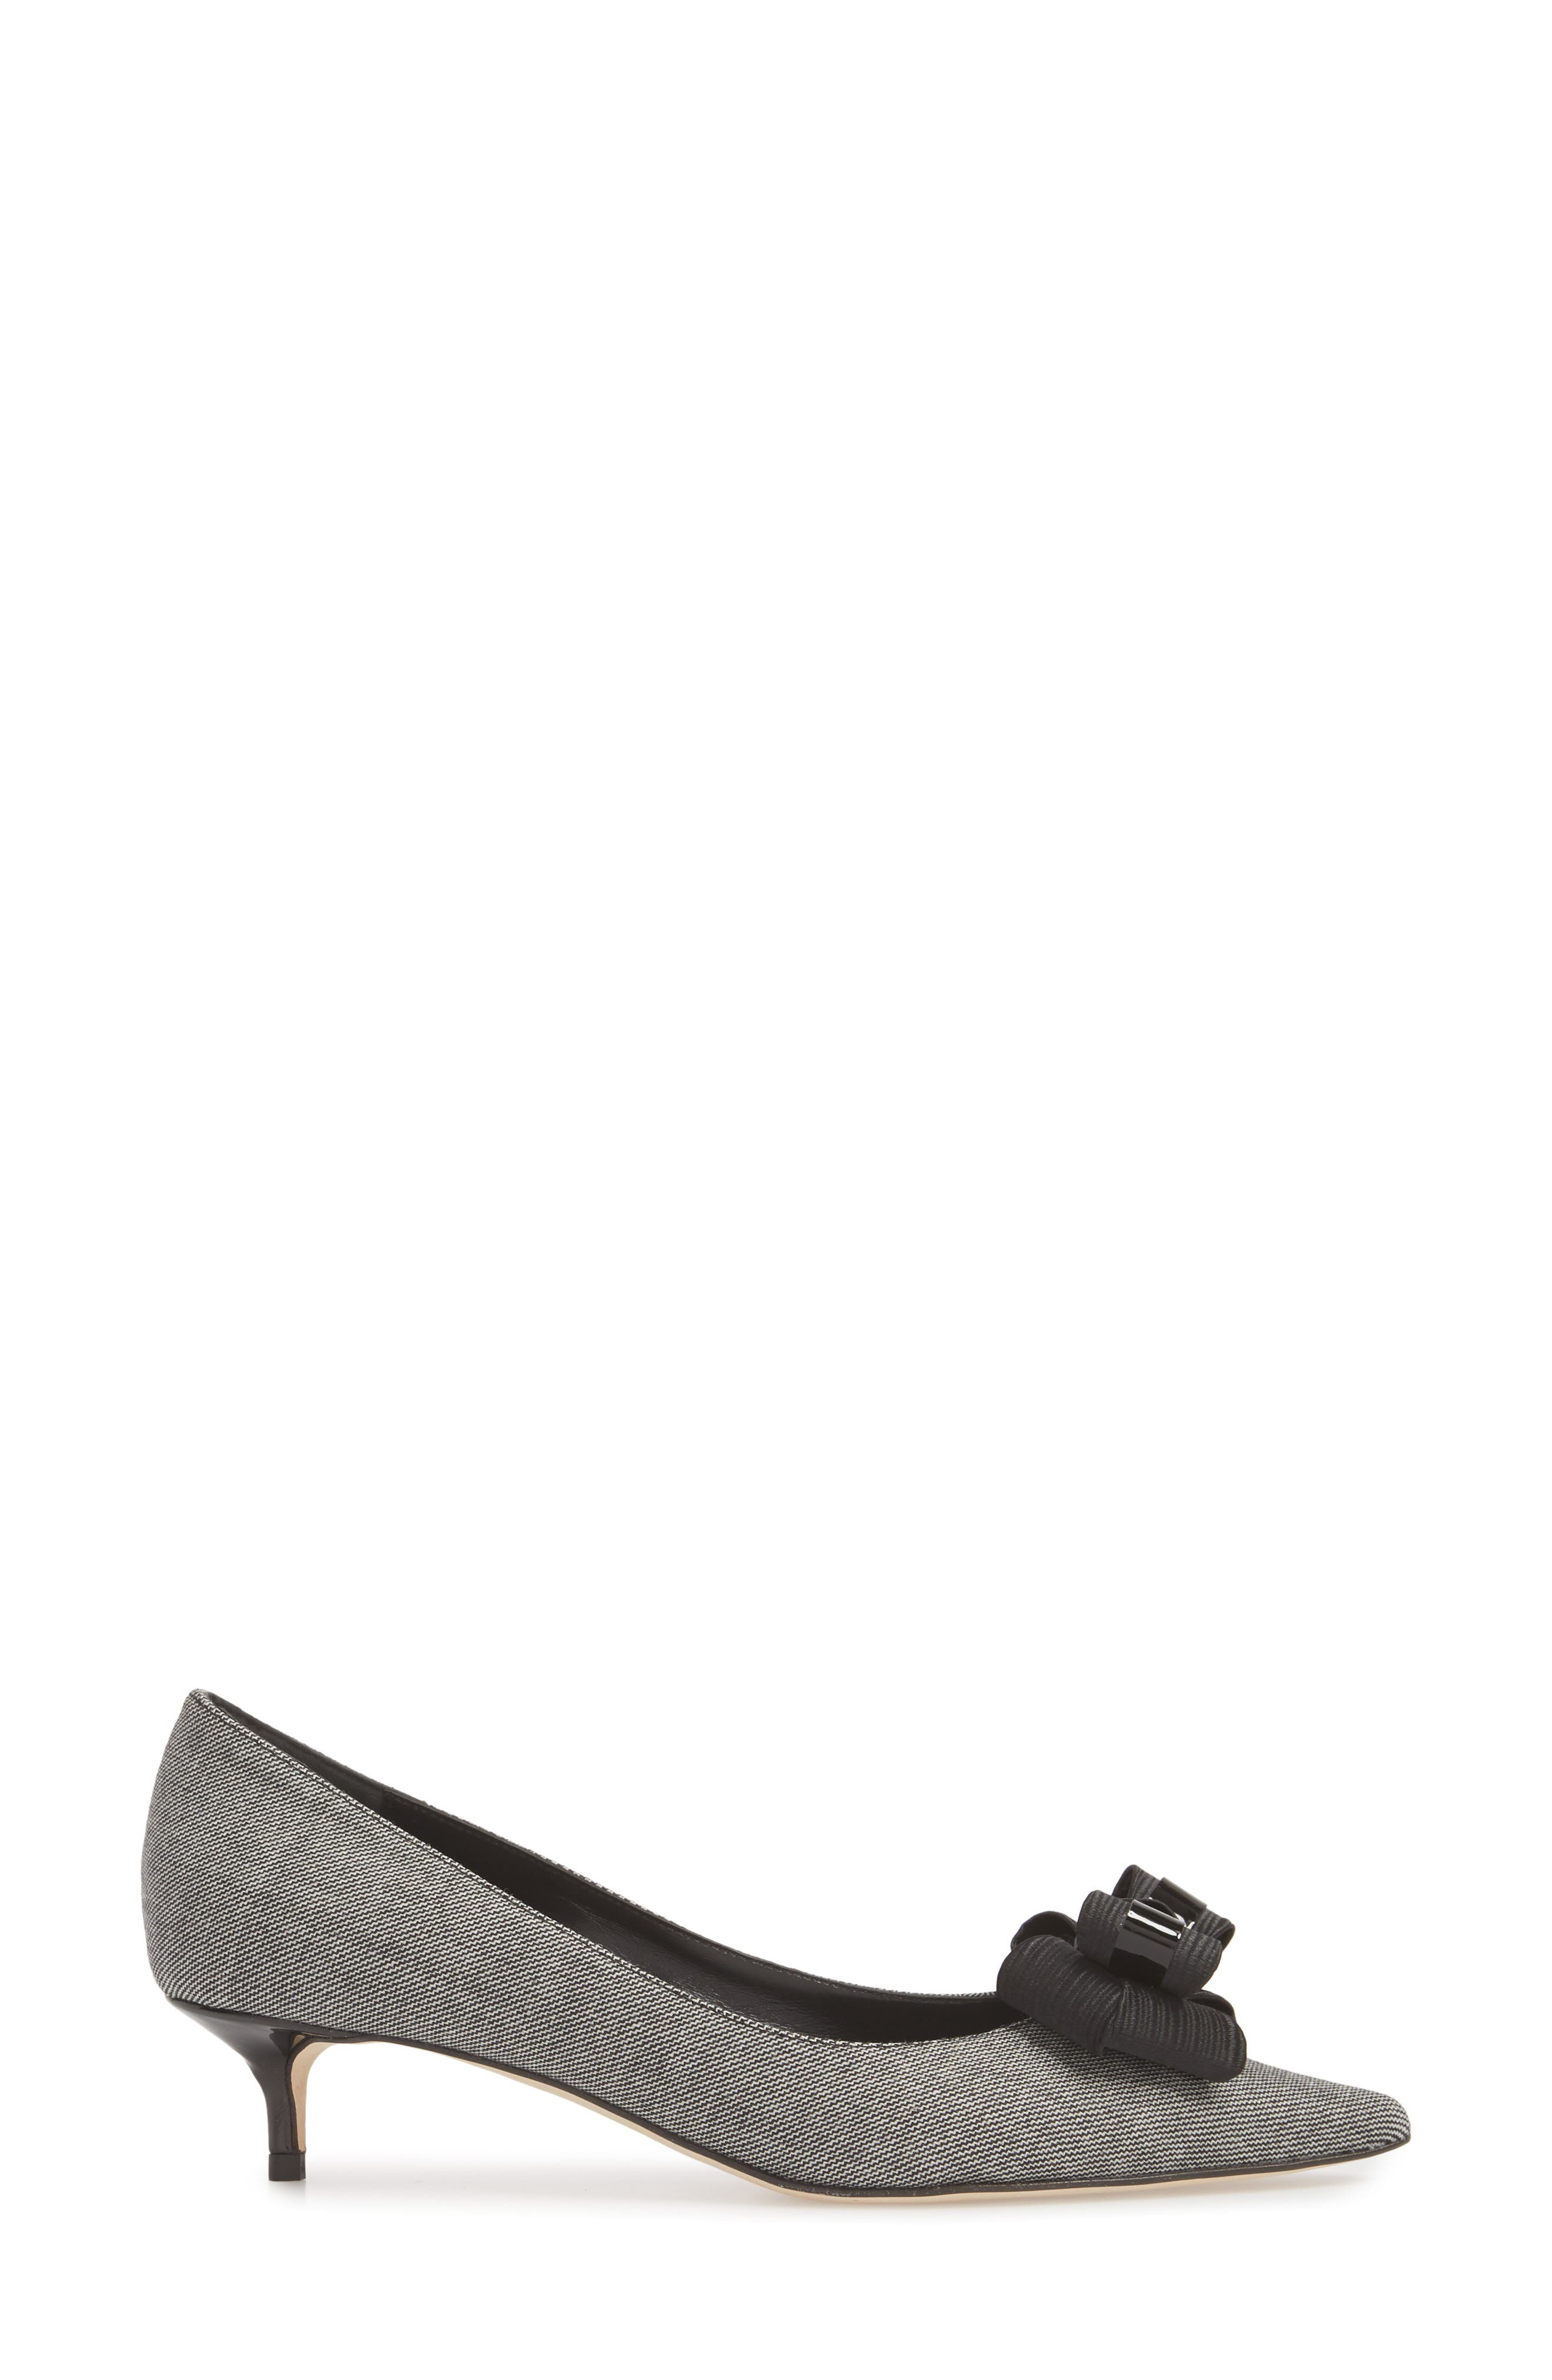 Butter Bentley Bow Pointy Toe Pump,                             Alternate thumbnail 3, color,                             Chatter Print